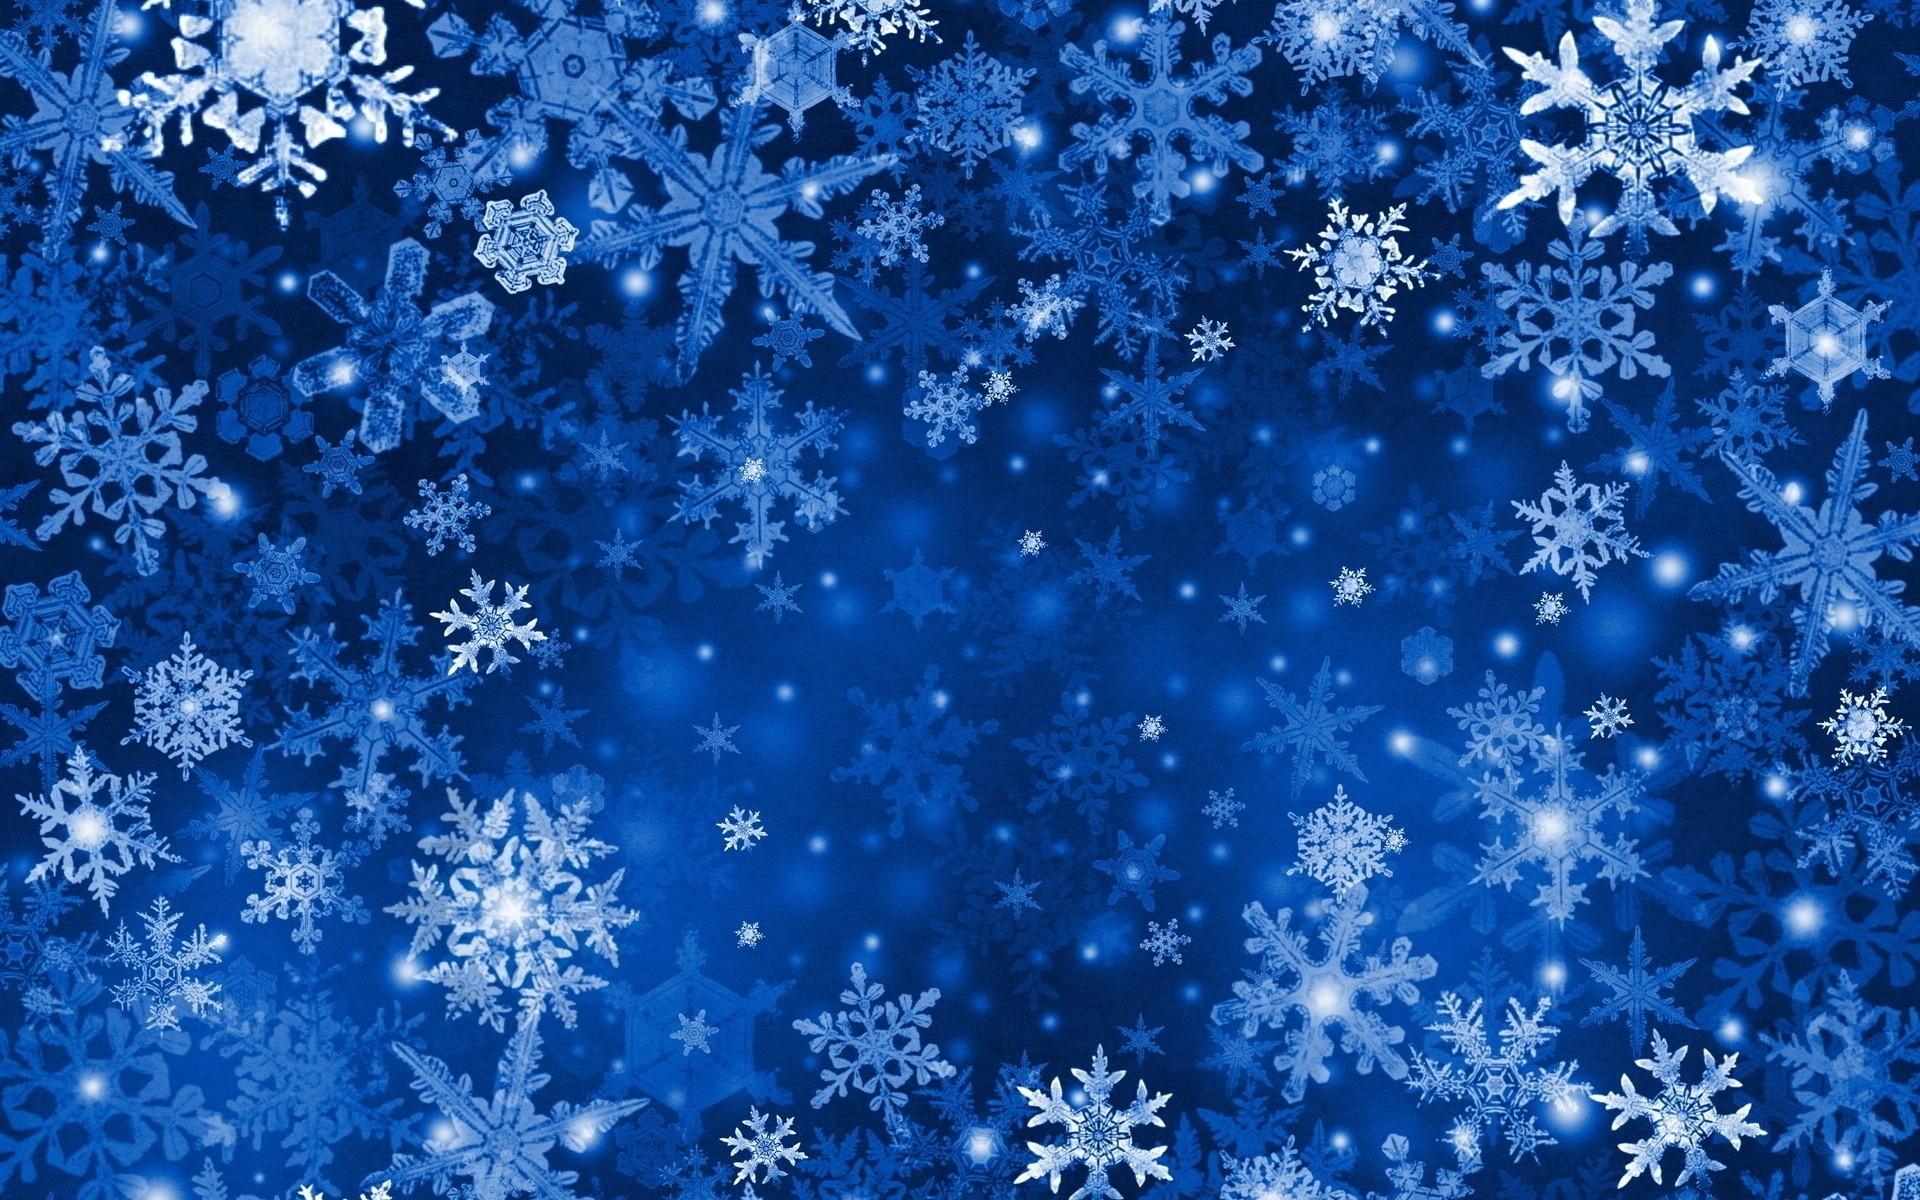 Res: 1920x1200, Artistic - Snowflake Abstract Winter Blue Wallpaper